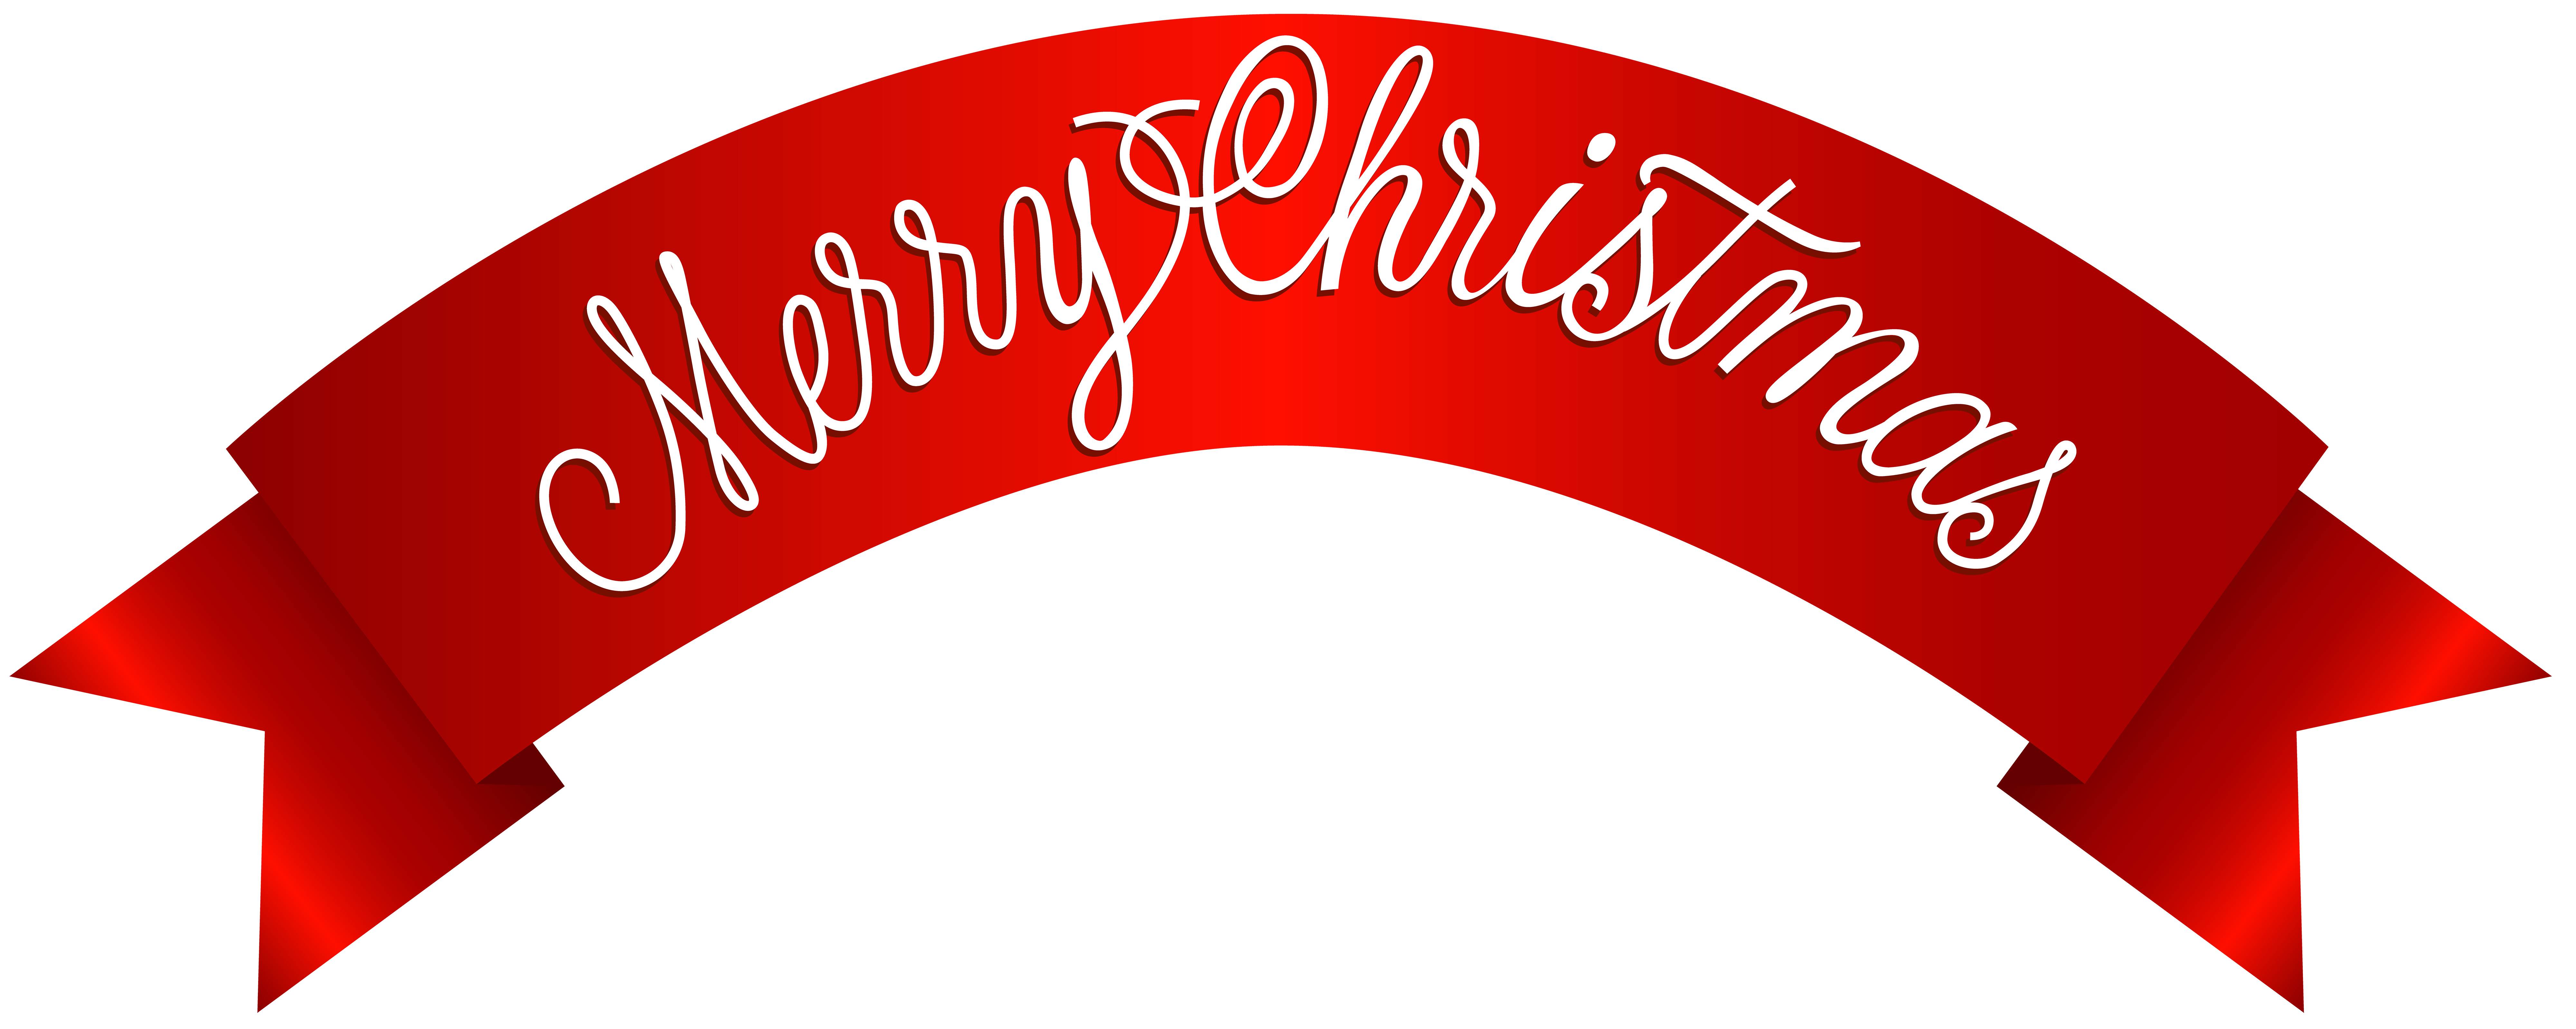 Merry christmas banner clipart png library Merry Christmas Banner PNG Clip Art Image | Gallery Yopriceville ... png library